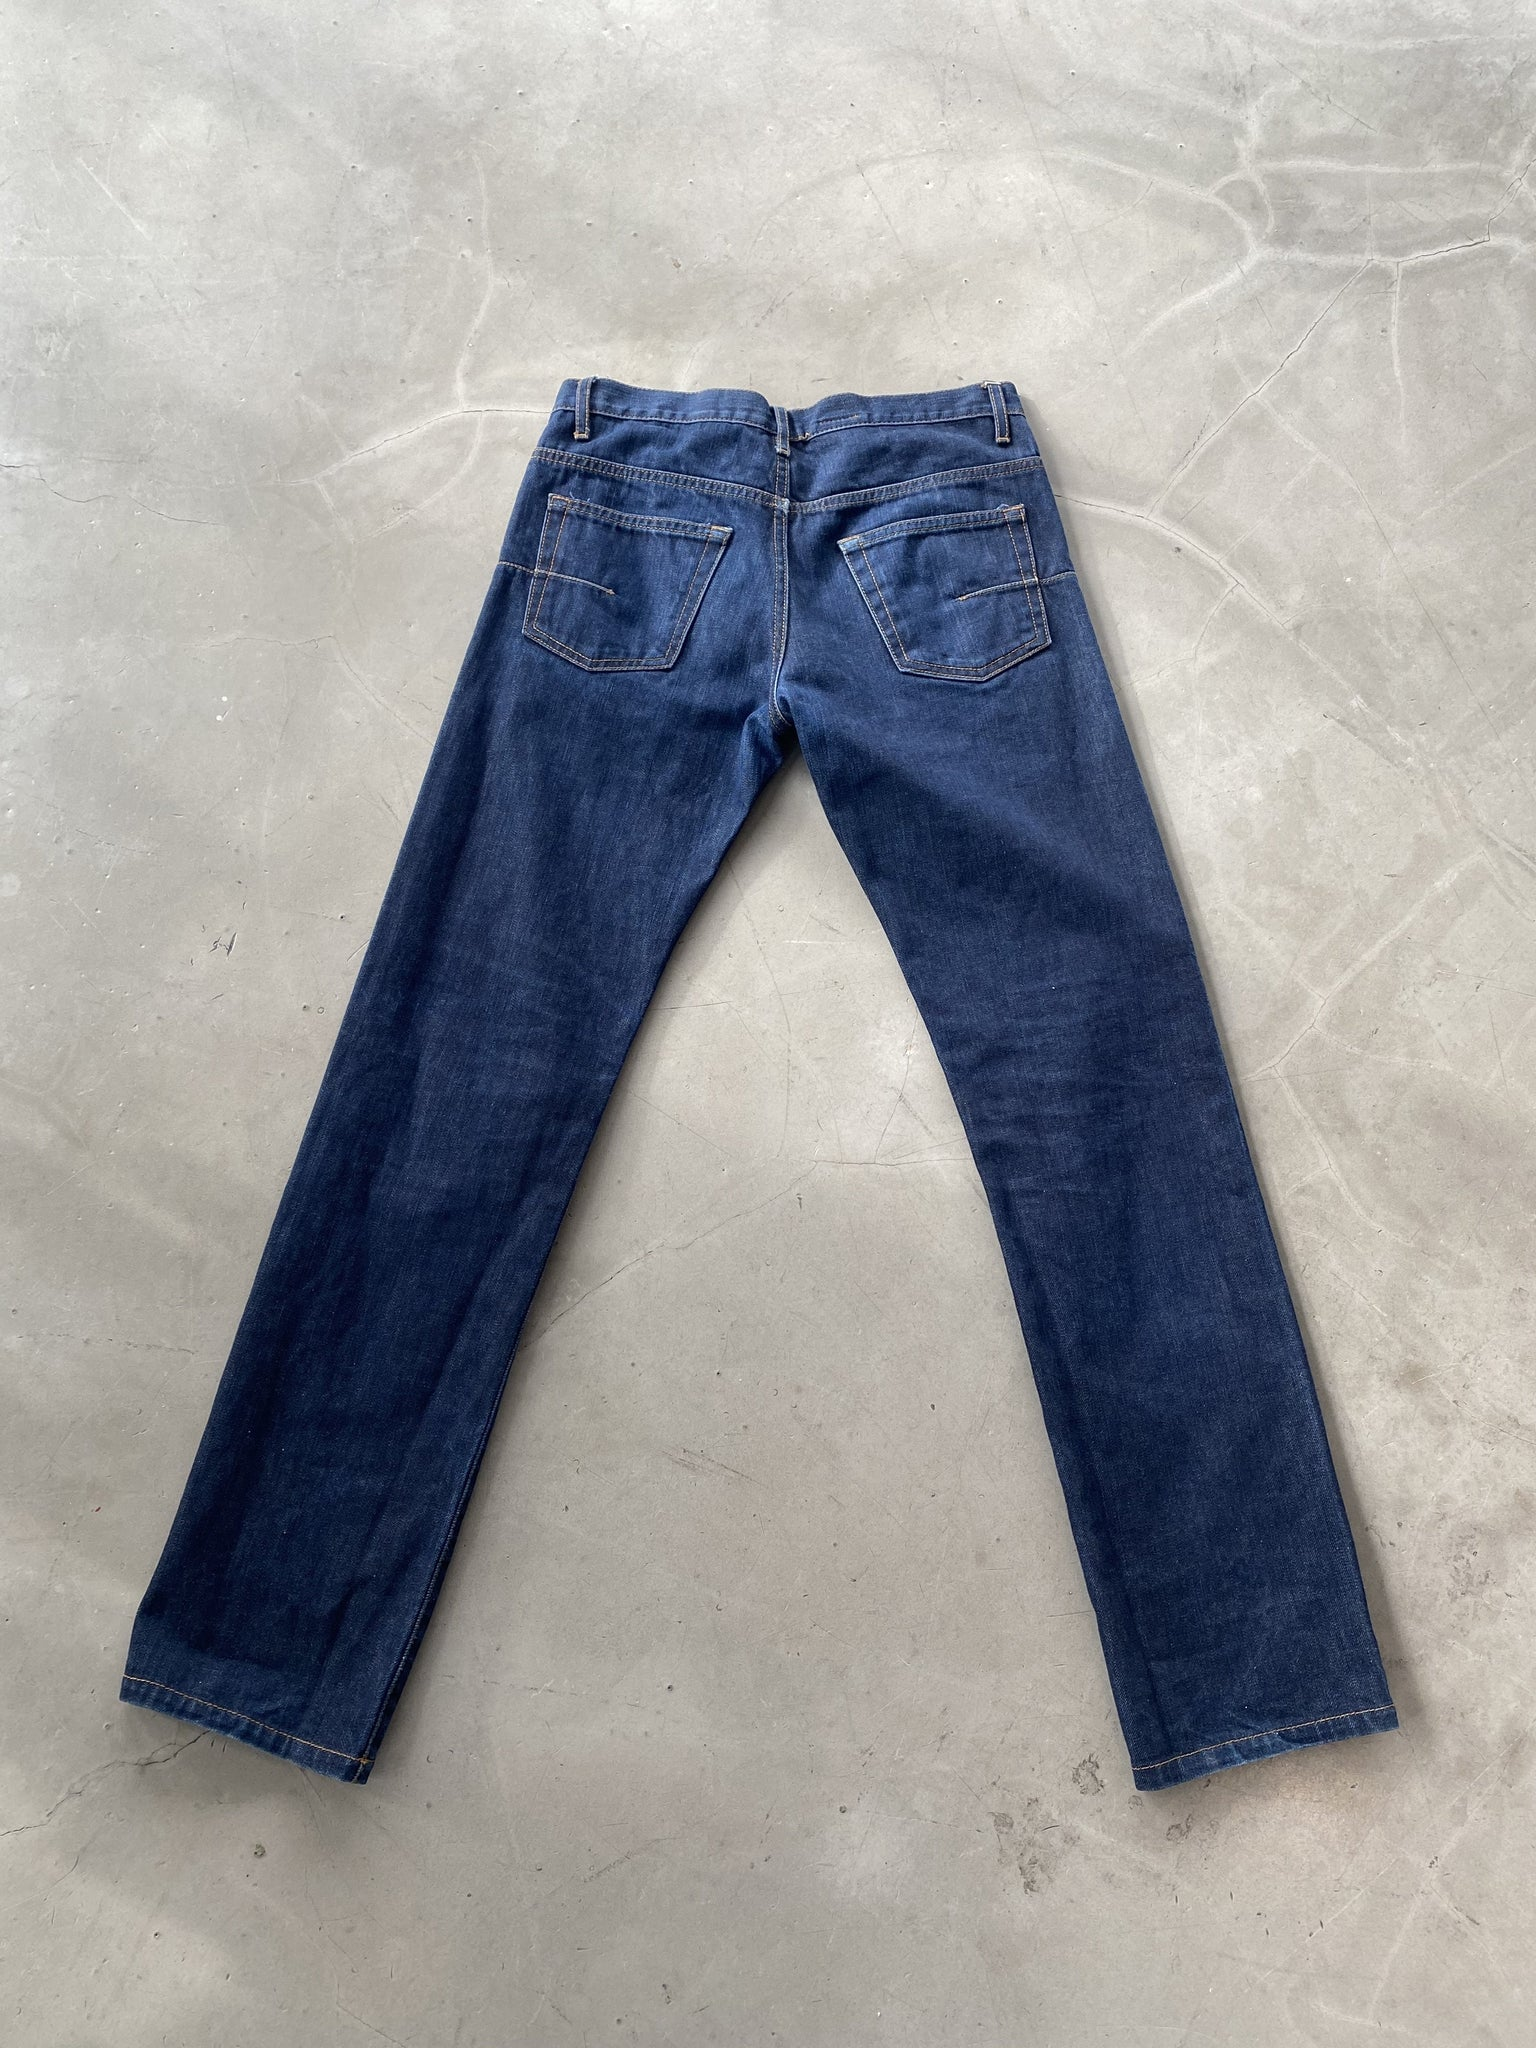 Dior Blue Wash Vintage Denim